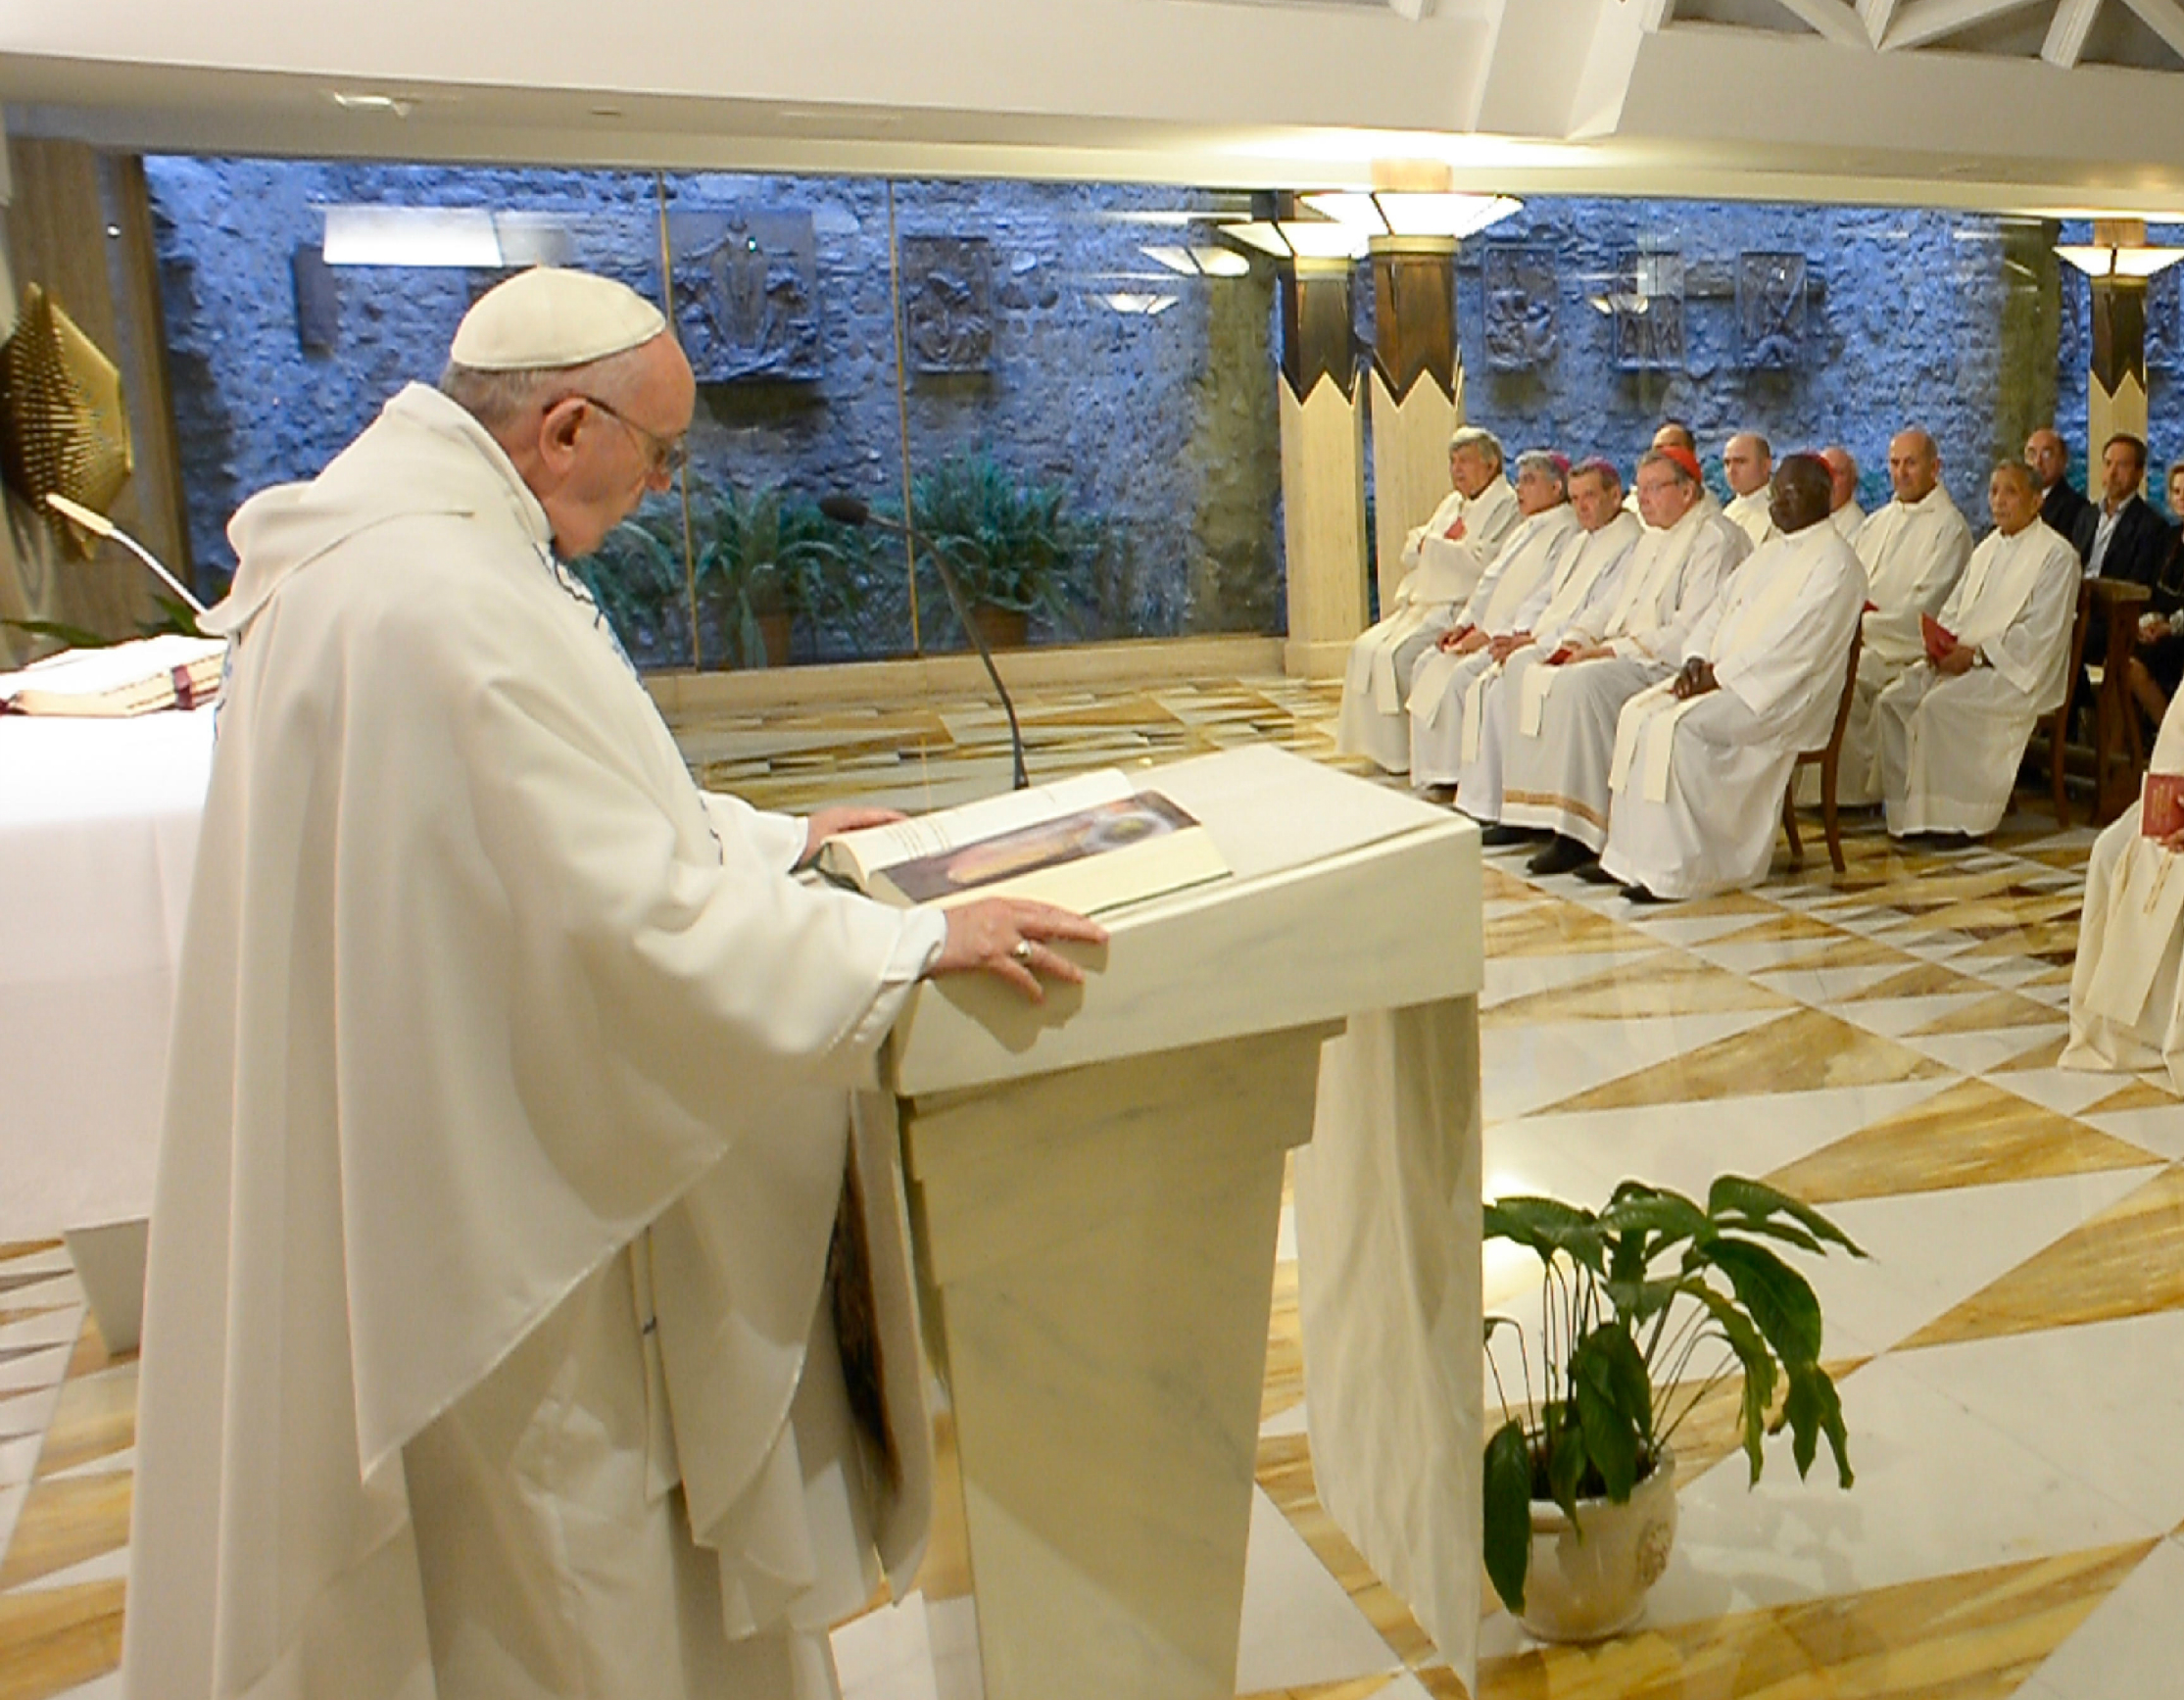 Pope Francis delivers his homily in Santa Marta